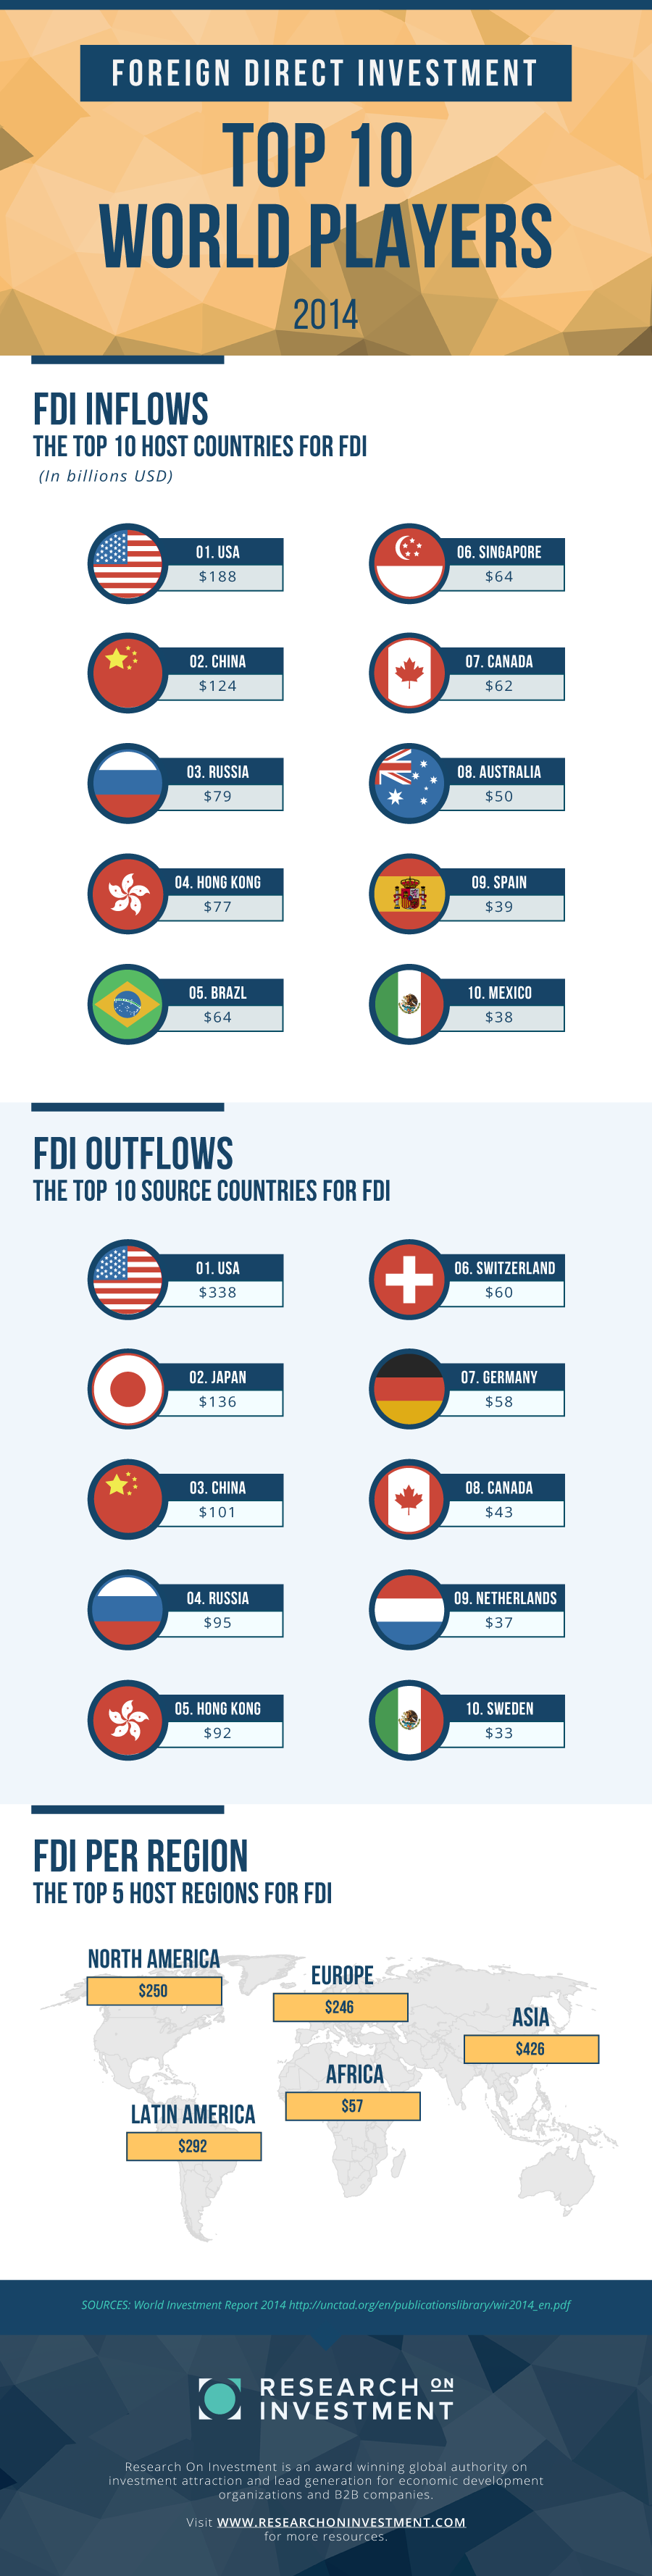 FOREIGN DIRECT INVESTMENT – TOP 10 PERFORMING COUNTRIES IN 2014 (INFOGRAPHIC)